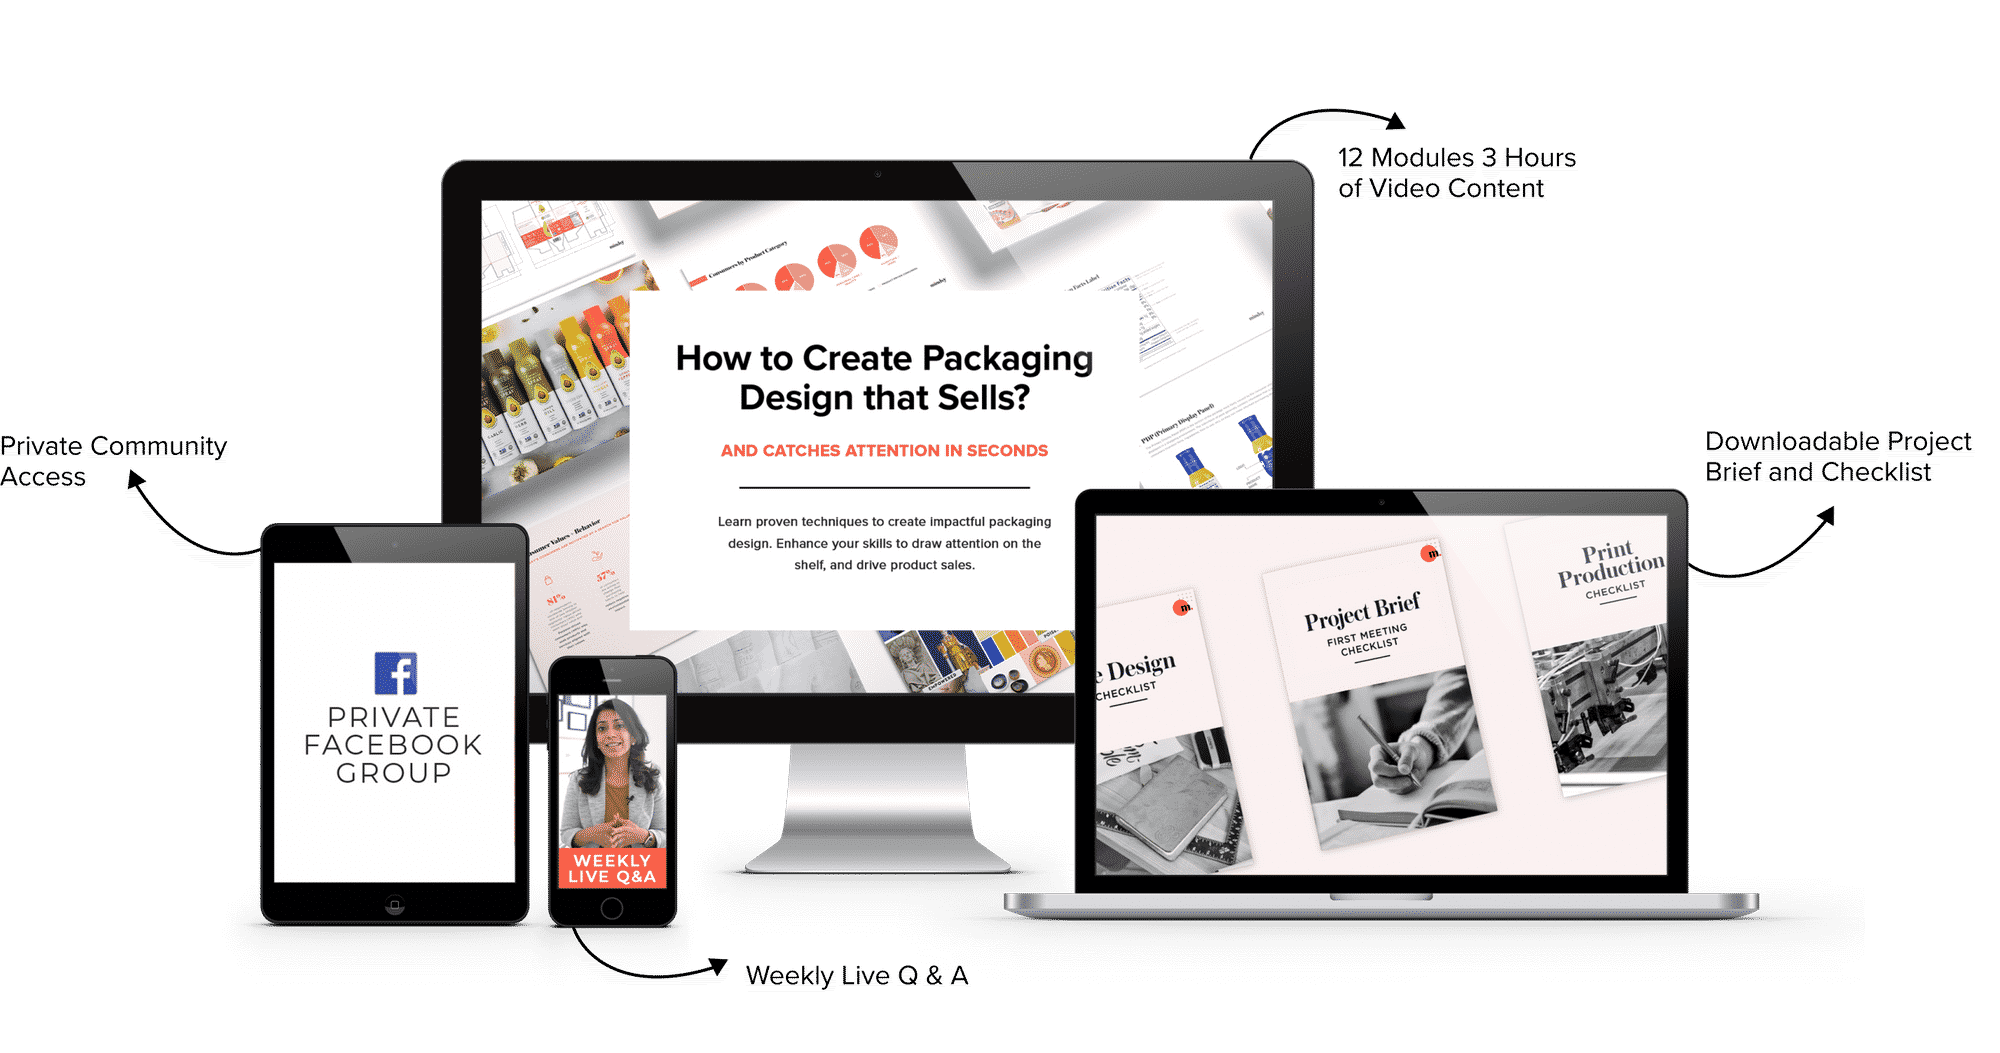 Best Packaging Design Course Online Overview